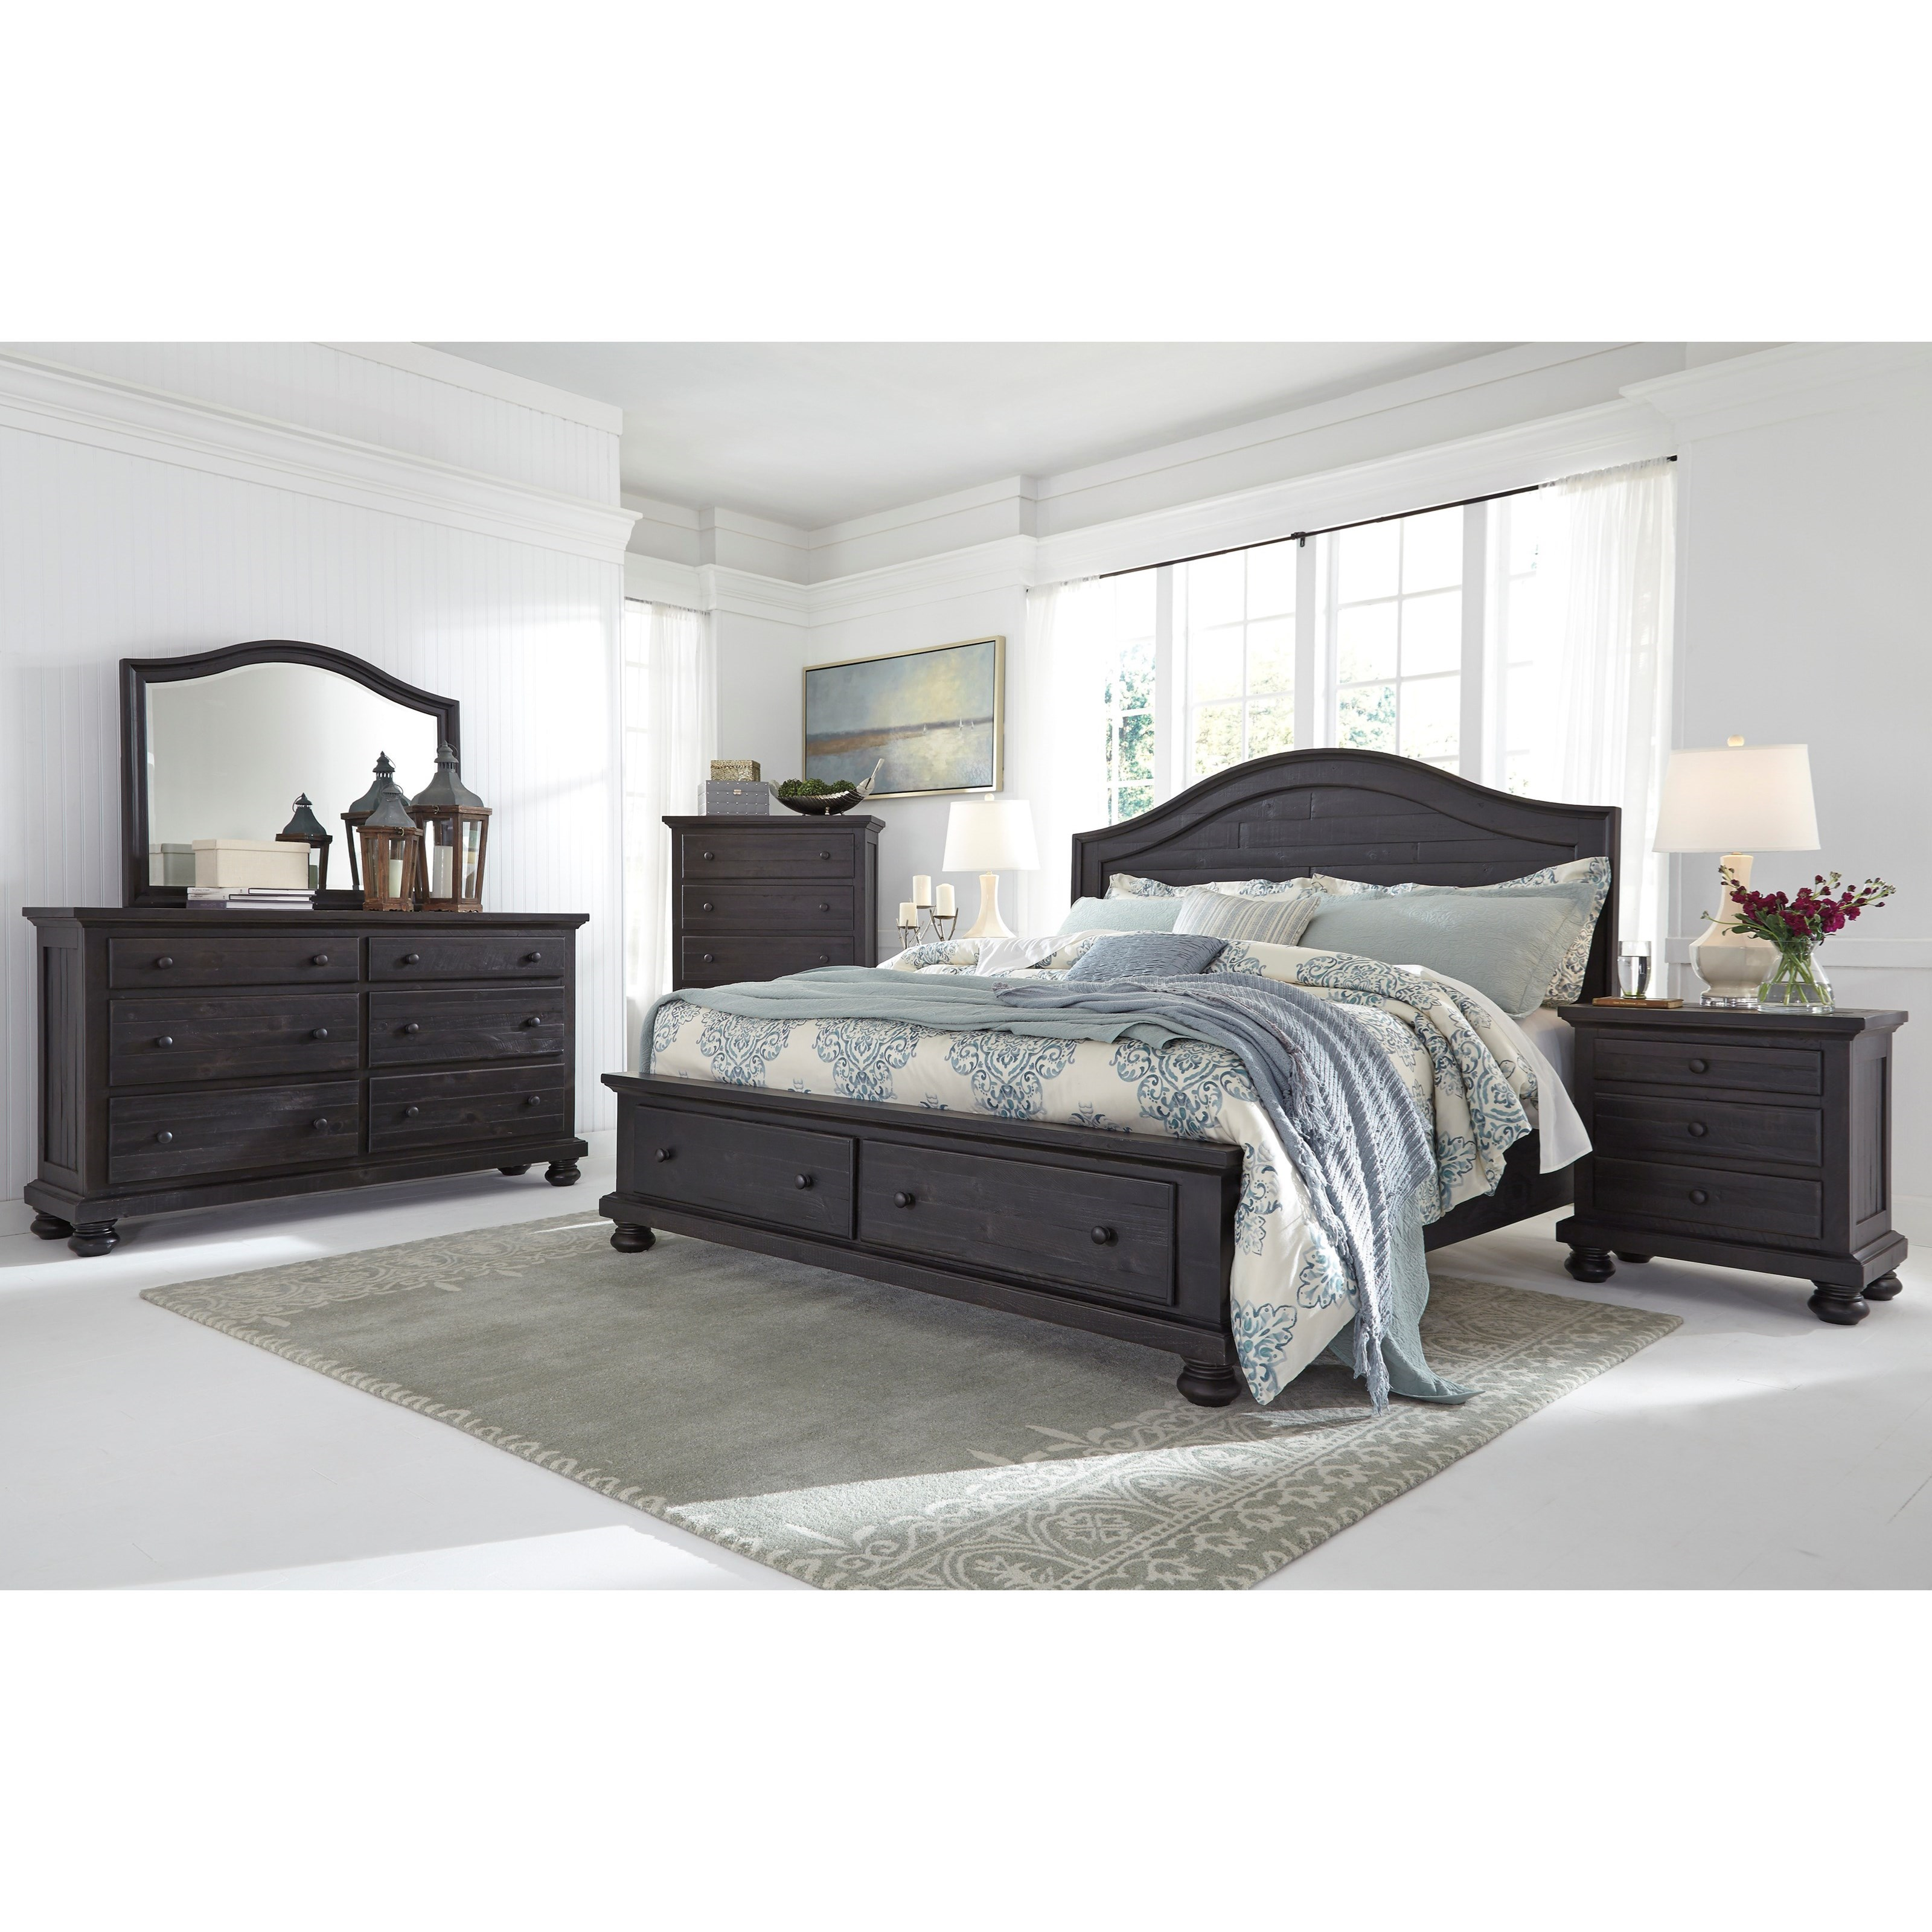 Signature Design by Ashley Sharlowe King Bedroom Group - Item Number: B635 K Bedroom Group 2